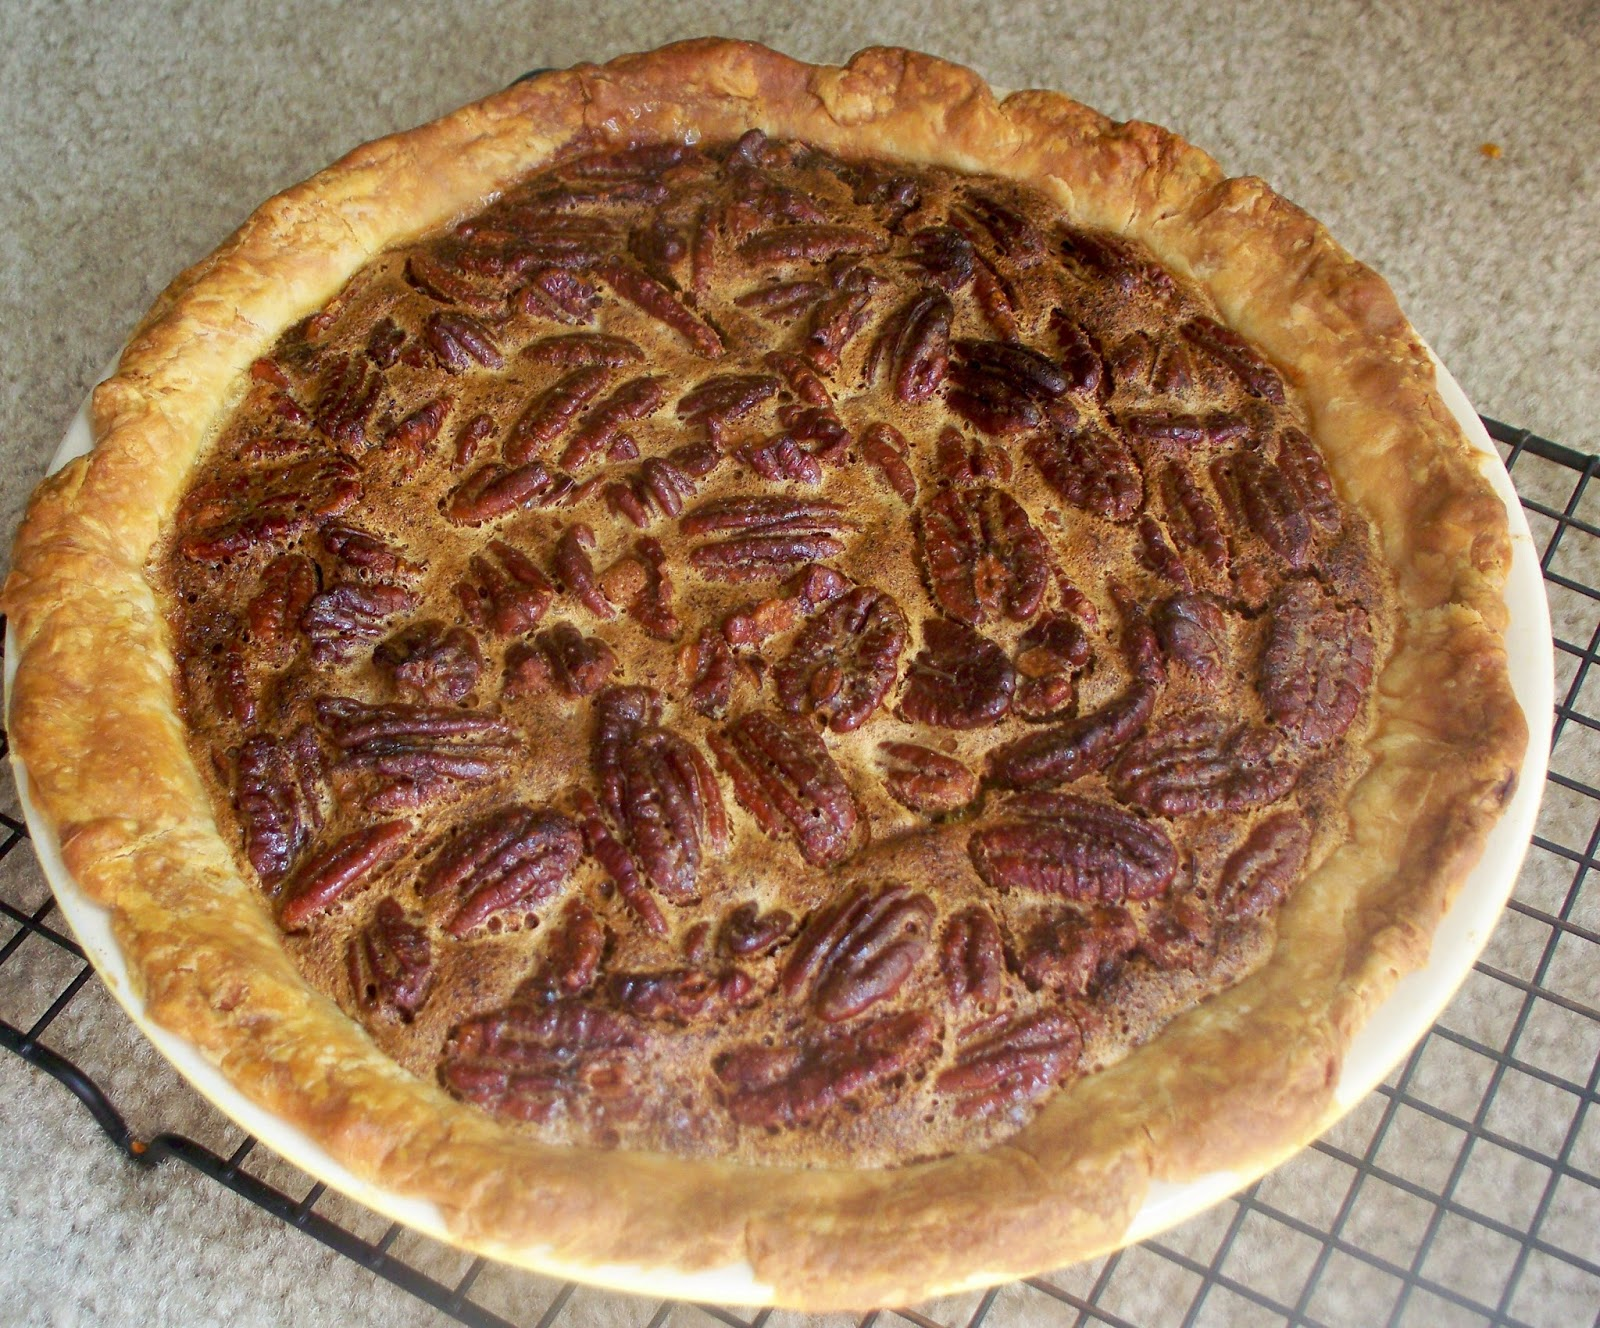 ... Very Complicated For No Real Improvement Over Other Recipes, So If You  Have A Favorite Pie Crust Recipe, Feel Free To Use That Instead Of This One.